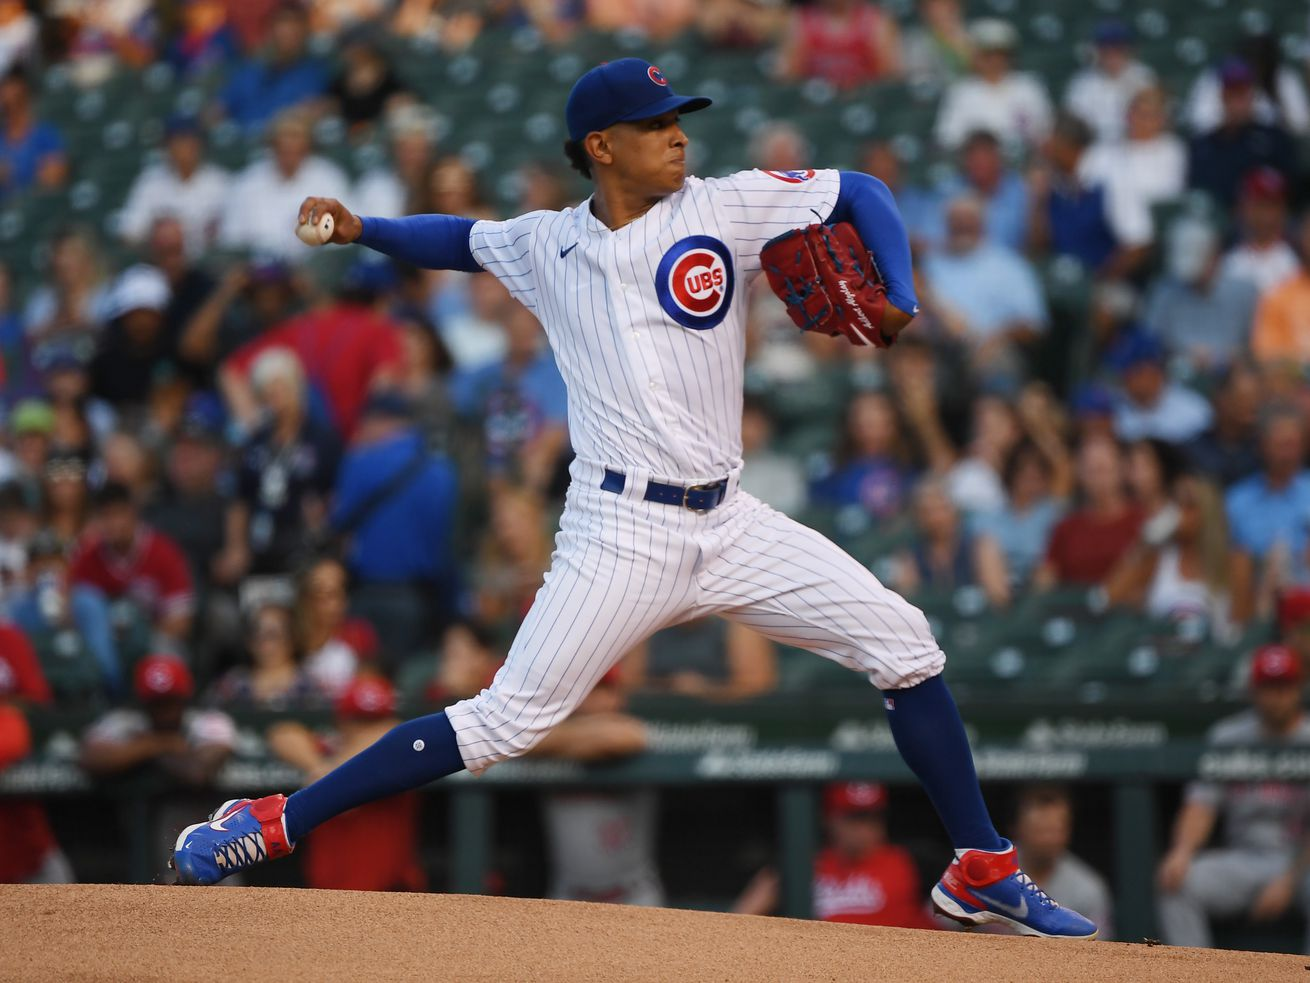 Lefties make it a long night for Adbert Alzolay as the Cubs fall to the Reds